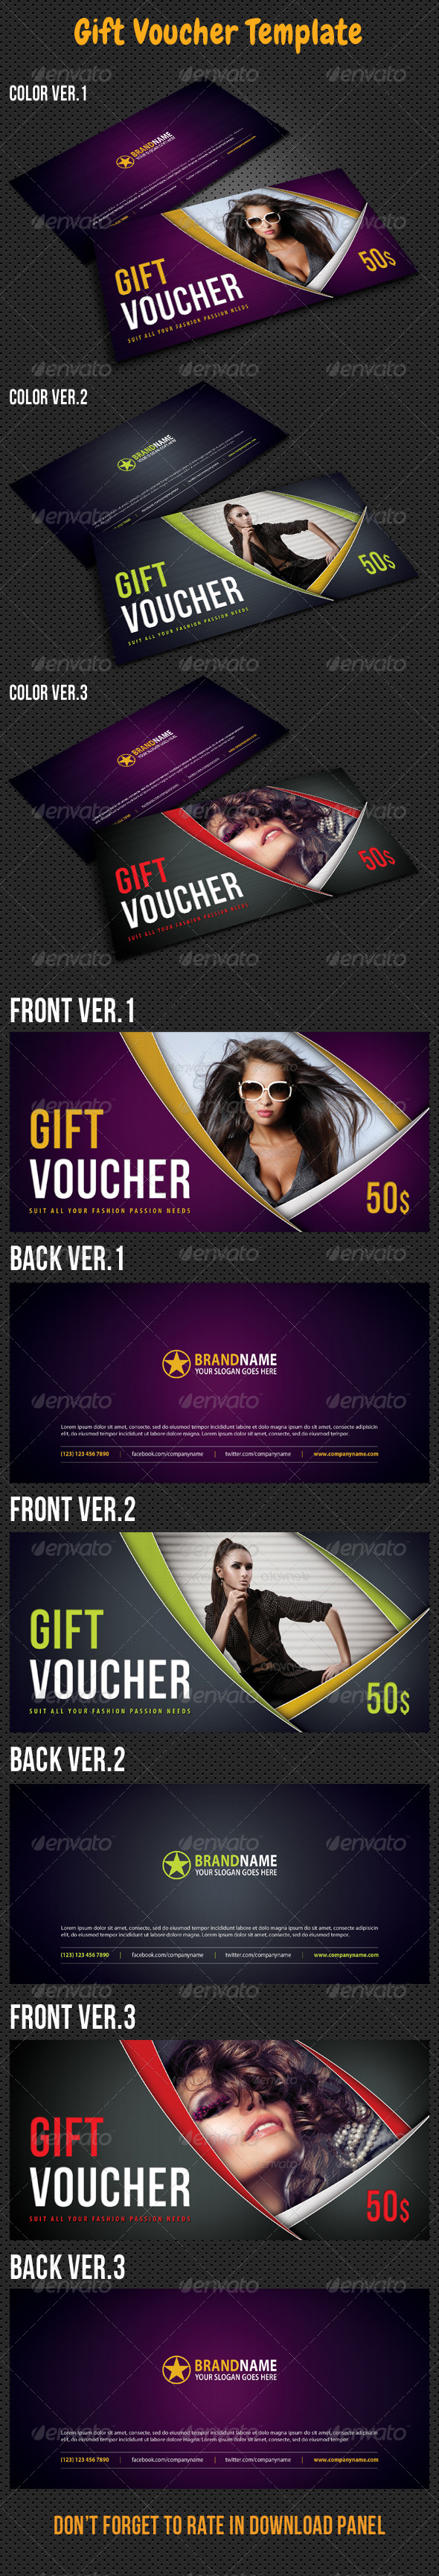 GraphicRiver Gift Voucher V10 8127099